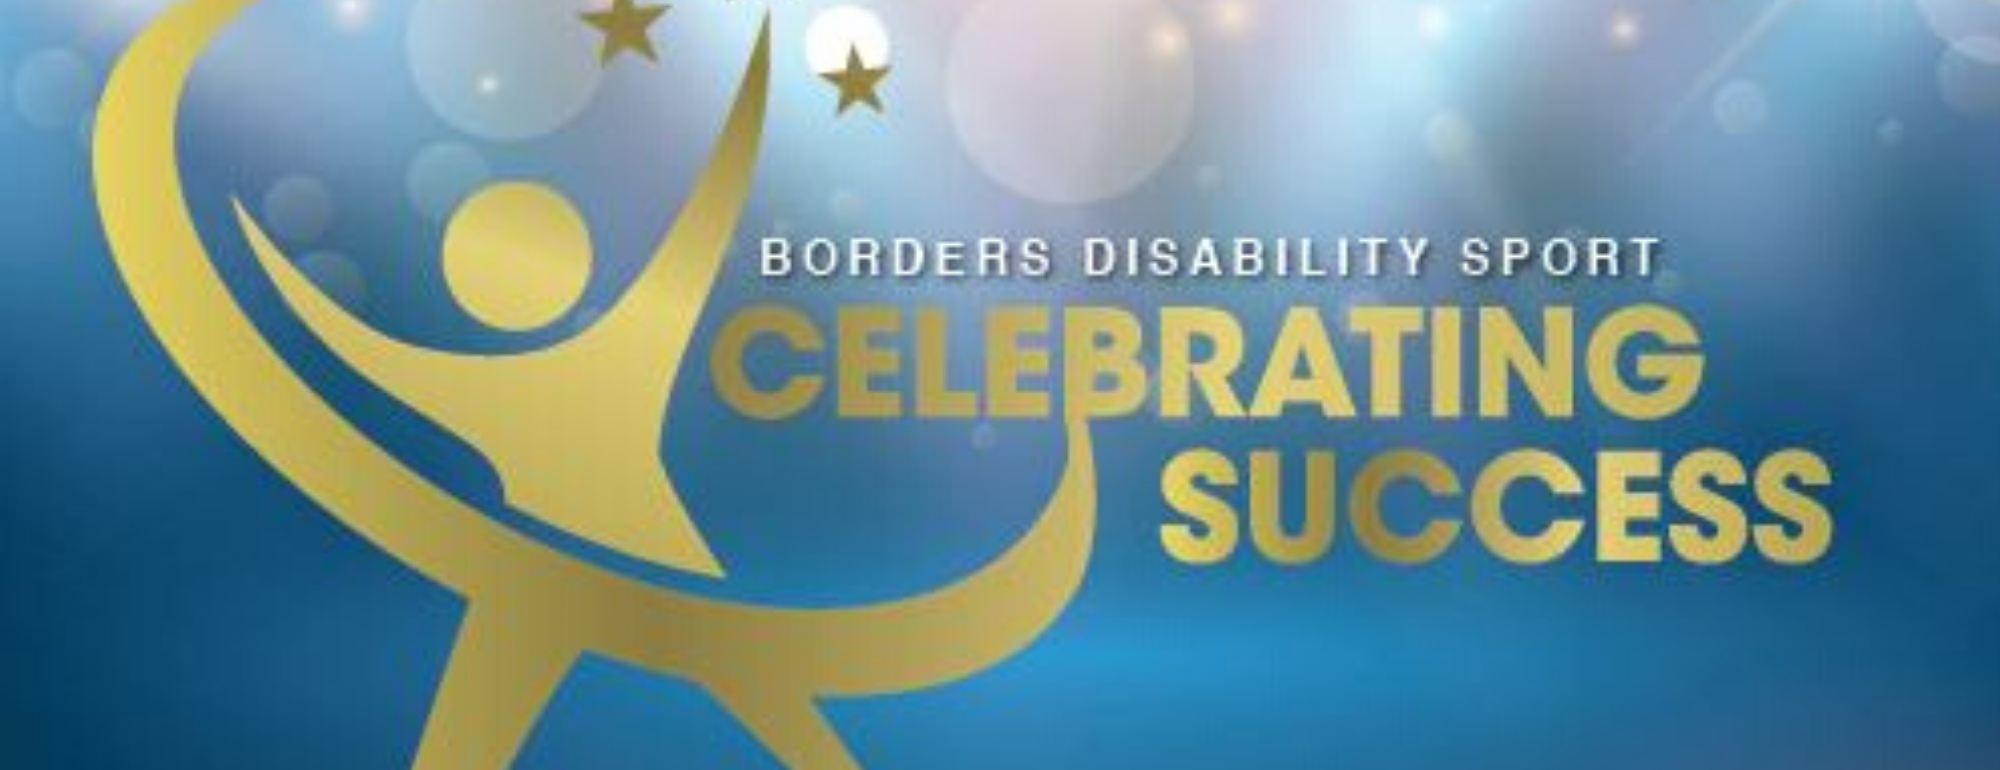 Borders Disability Sports